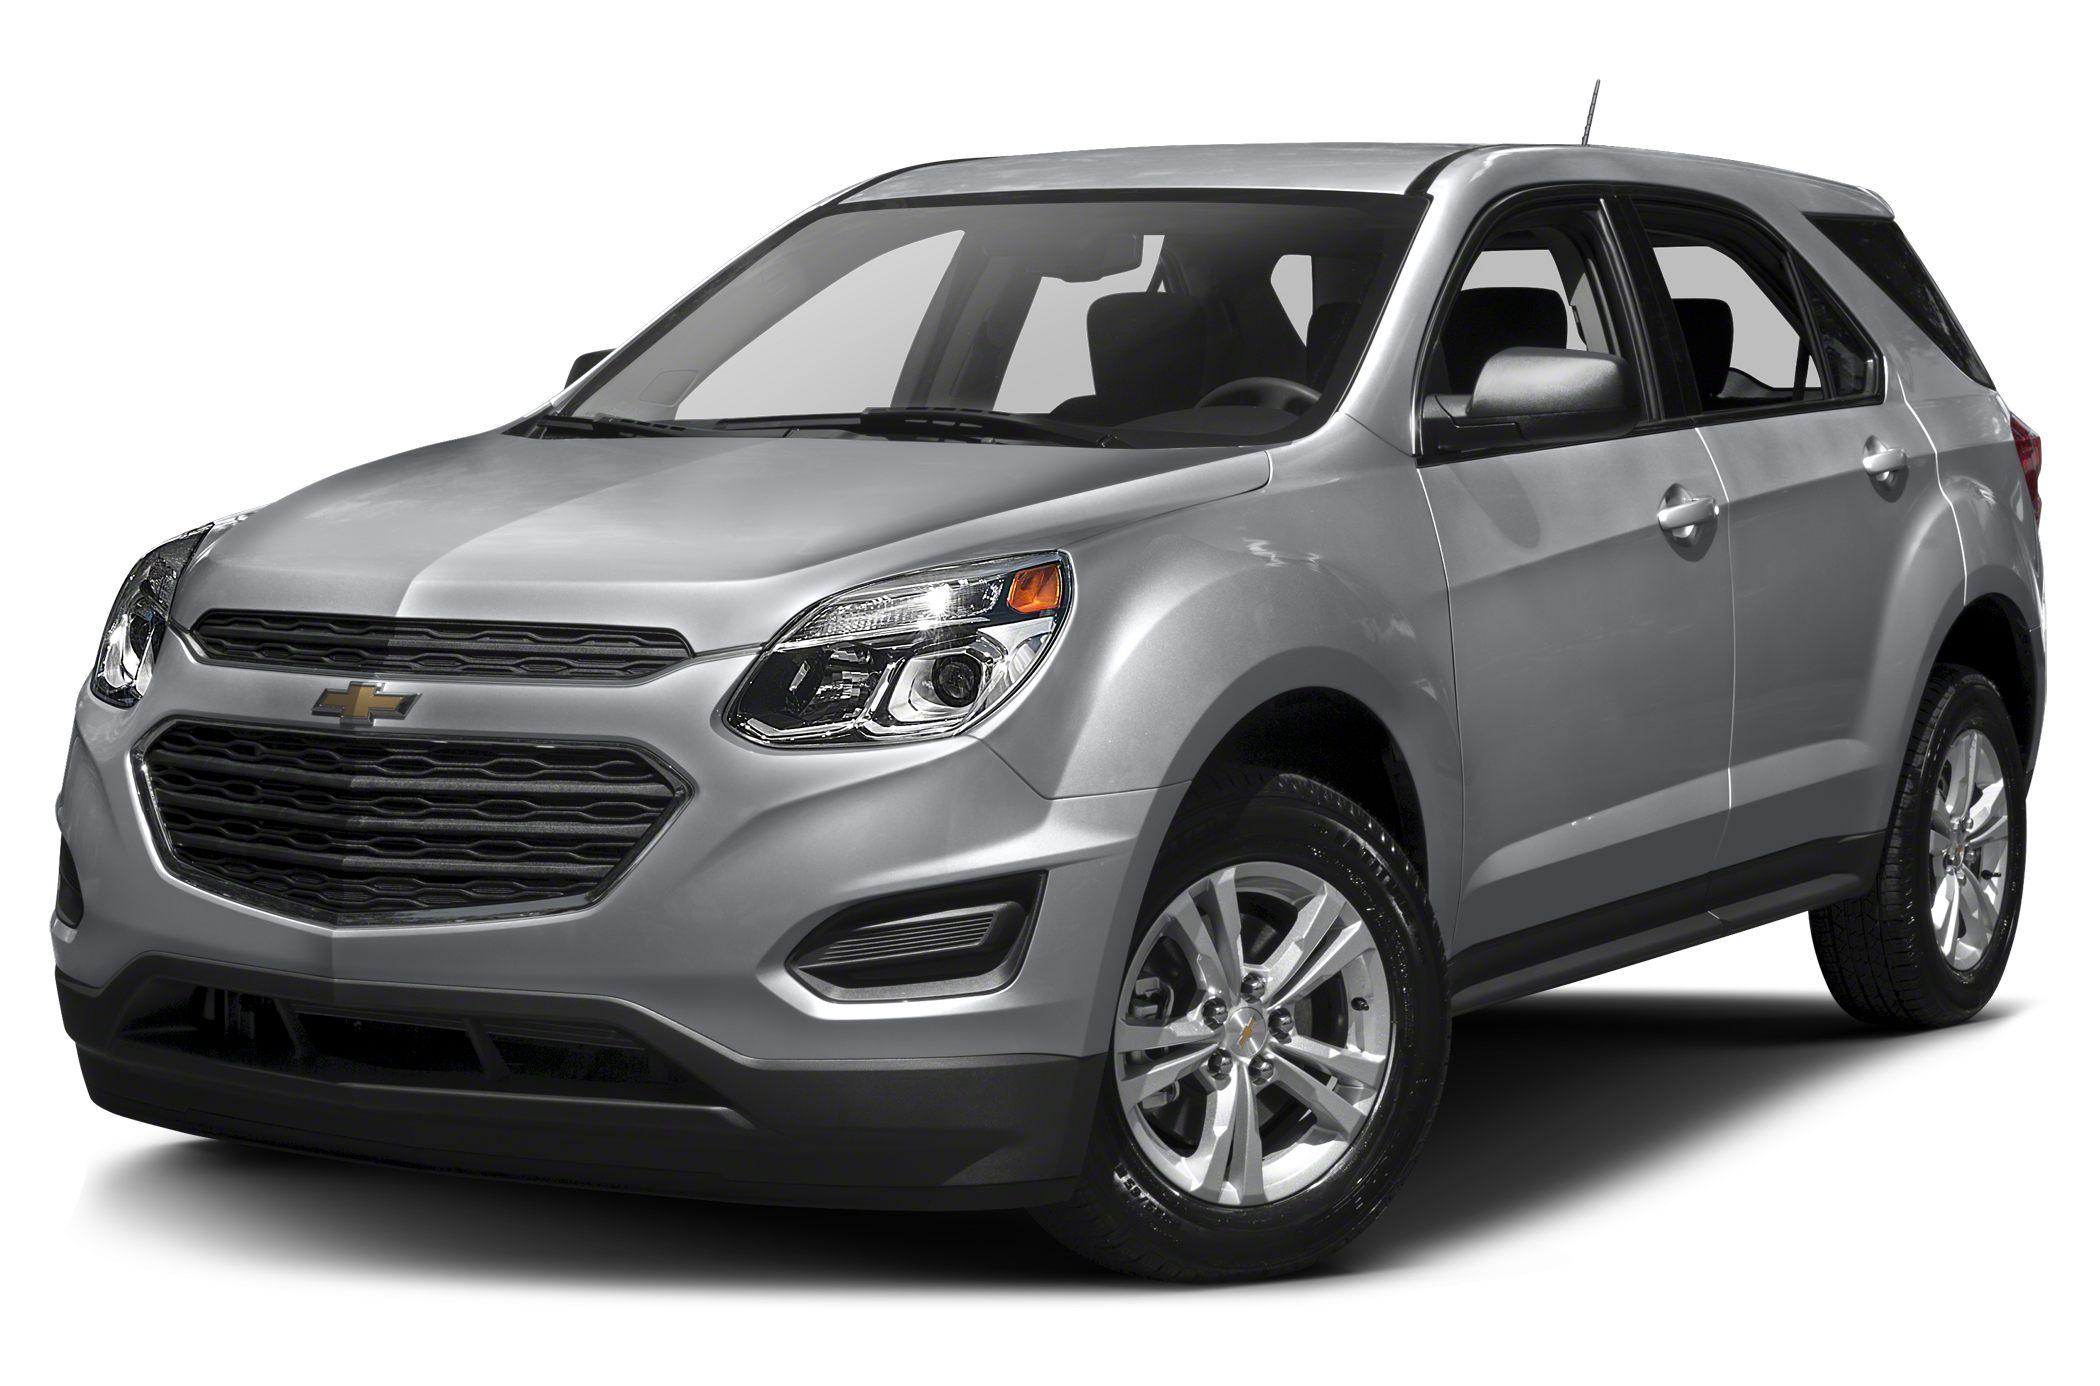 2018 chevy equinox chevrolet of naperville. Black Bedroom Furniture Sets. Home Design Ideas